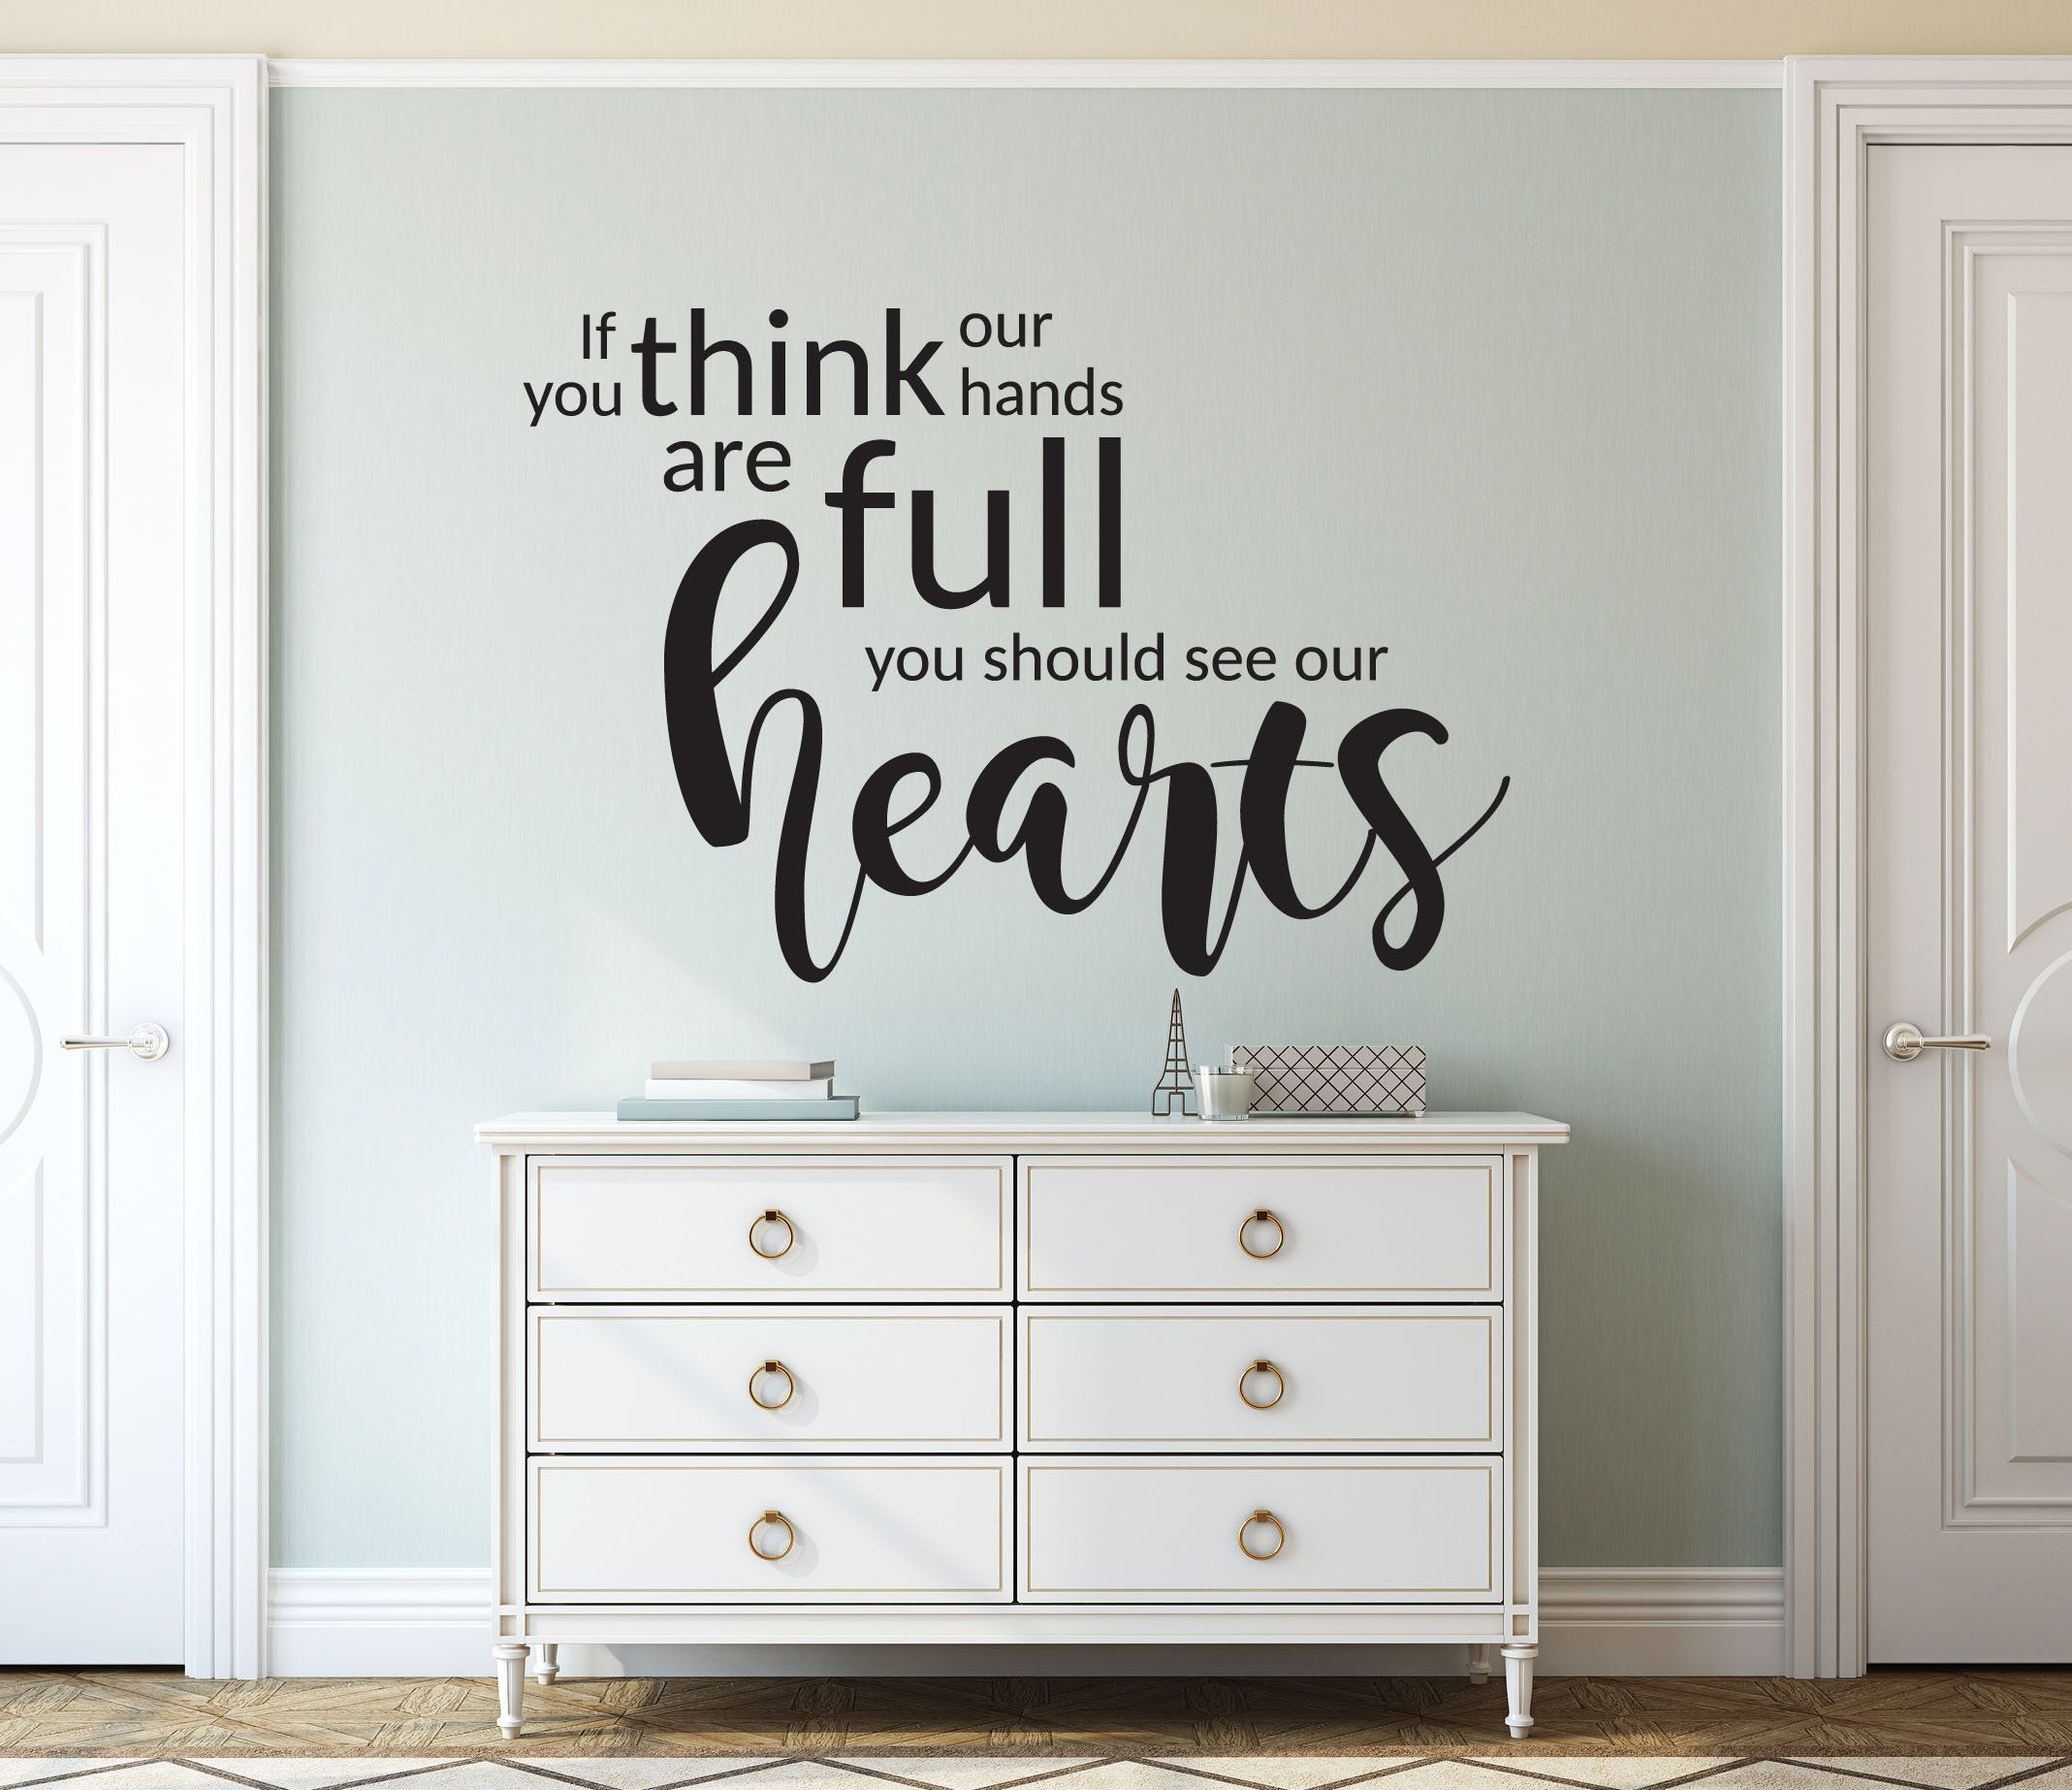 Vinyl Wall Art Decal - If You Think That Our